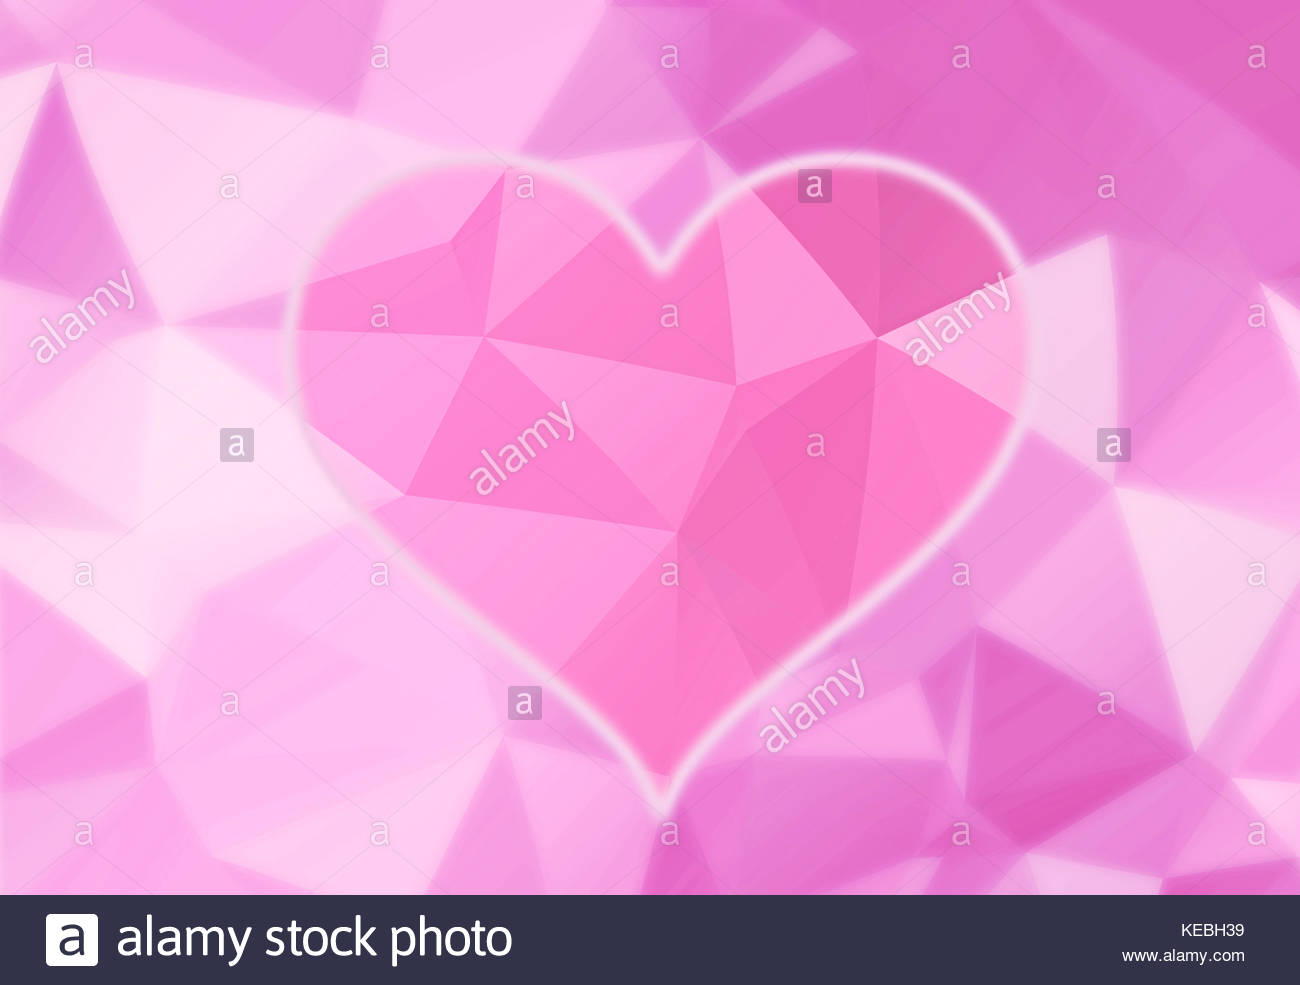 Artistic bright pink color heart love symbol on abstract blurred puprle triangle background illustration. - Stock Image